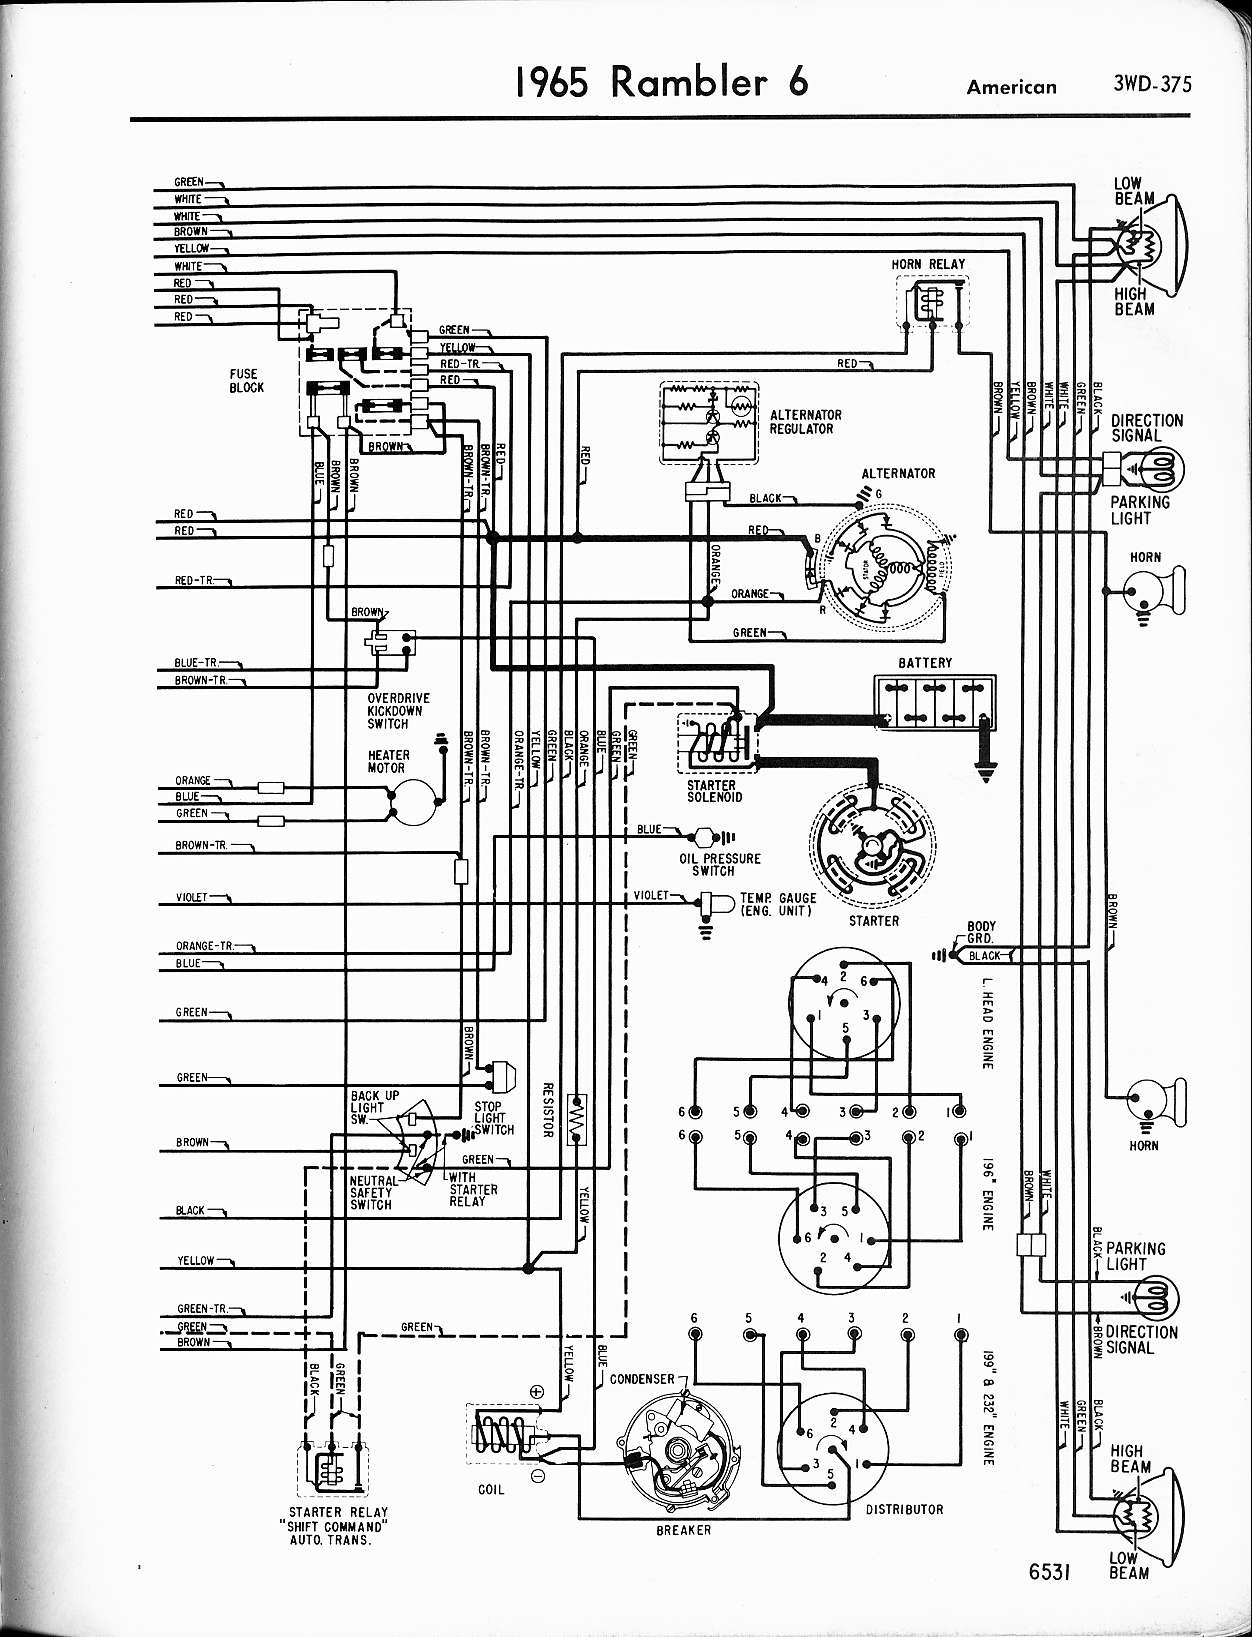 American Auto Wire Diagrams 51008 Automotive Wiring Diagram Highway 22 Kit Schemes